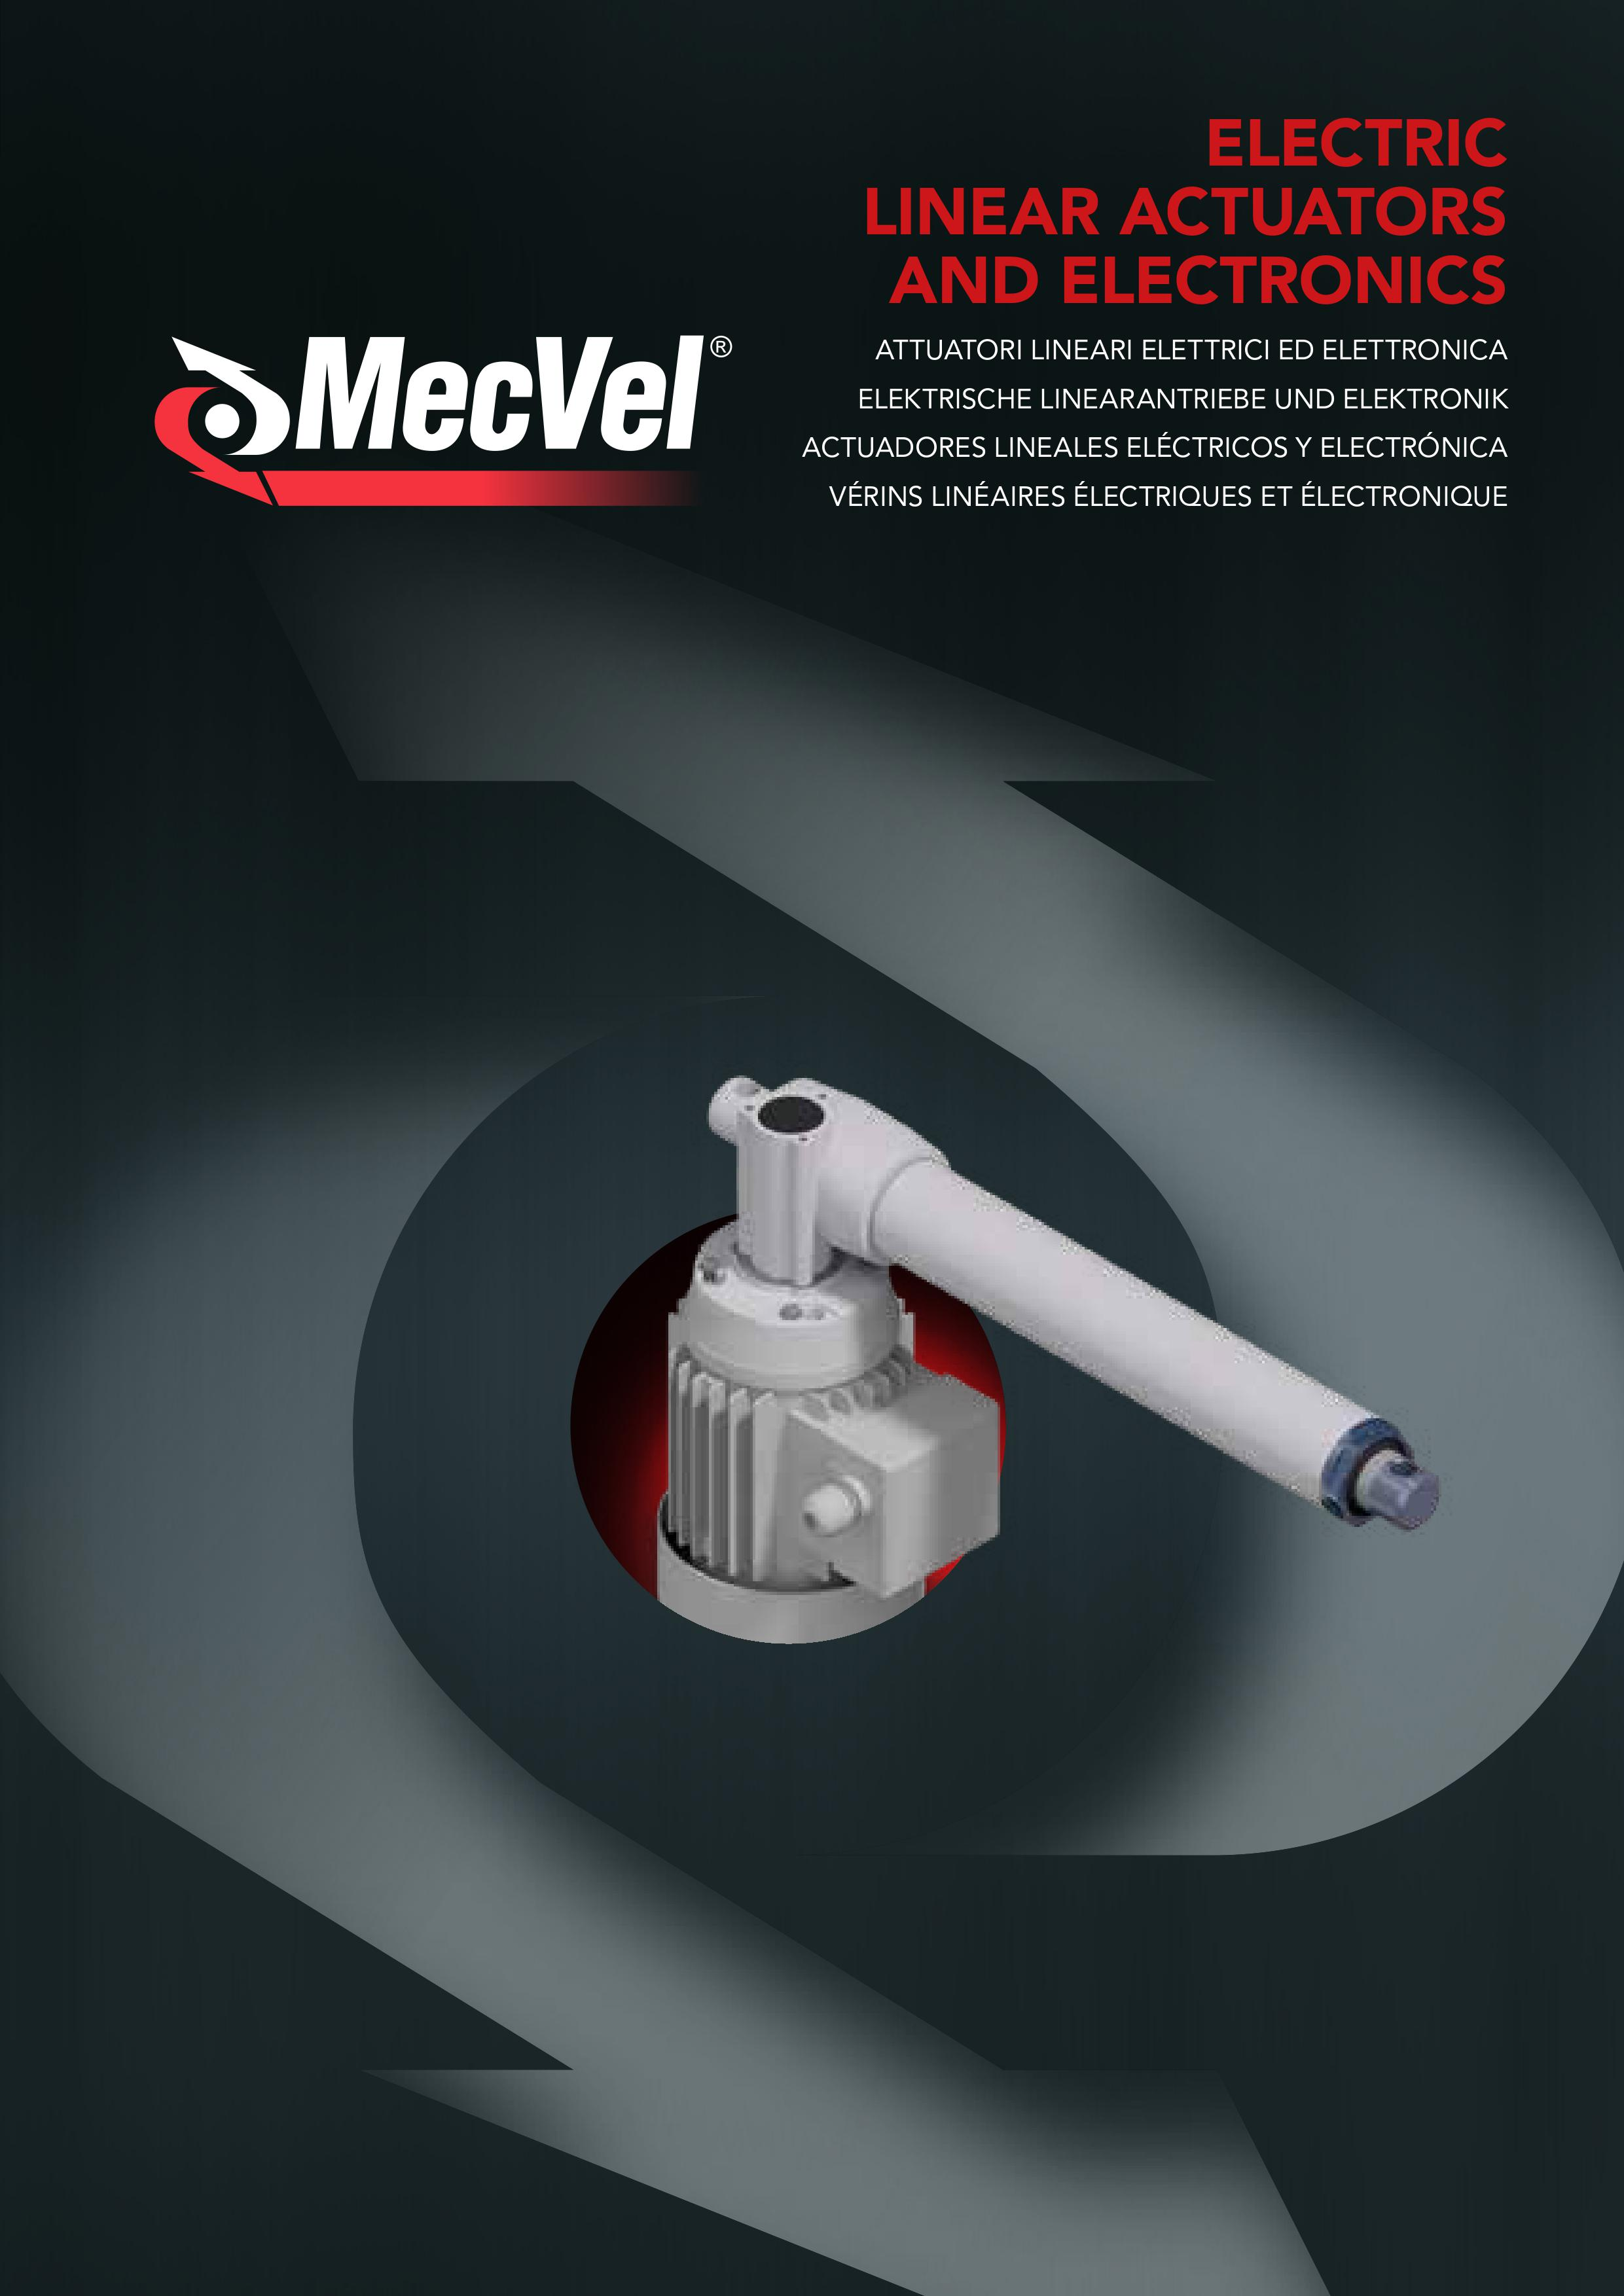 MecVel electric linear actuators range